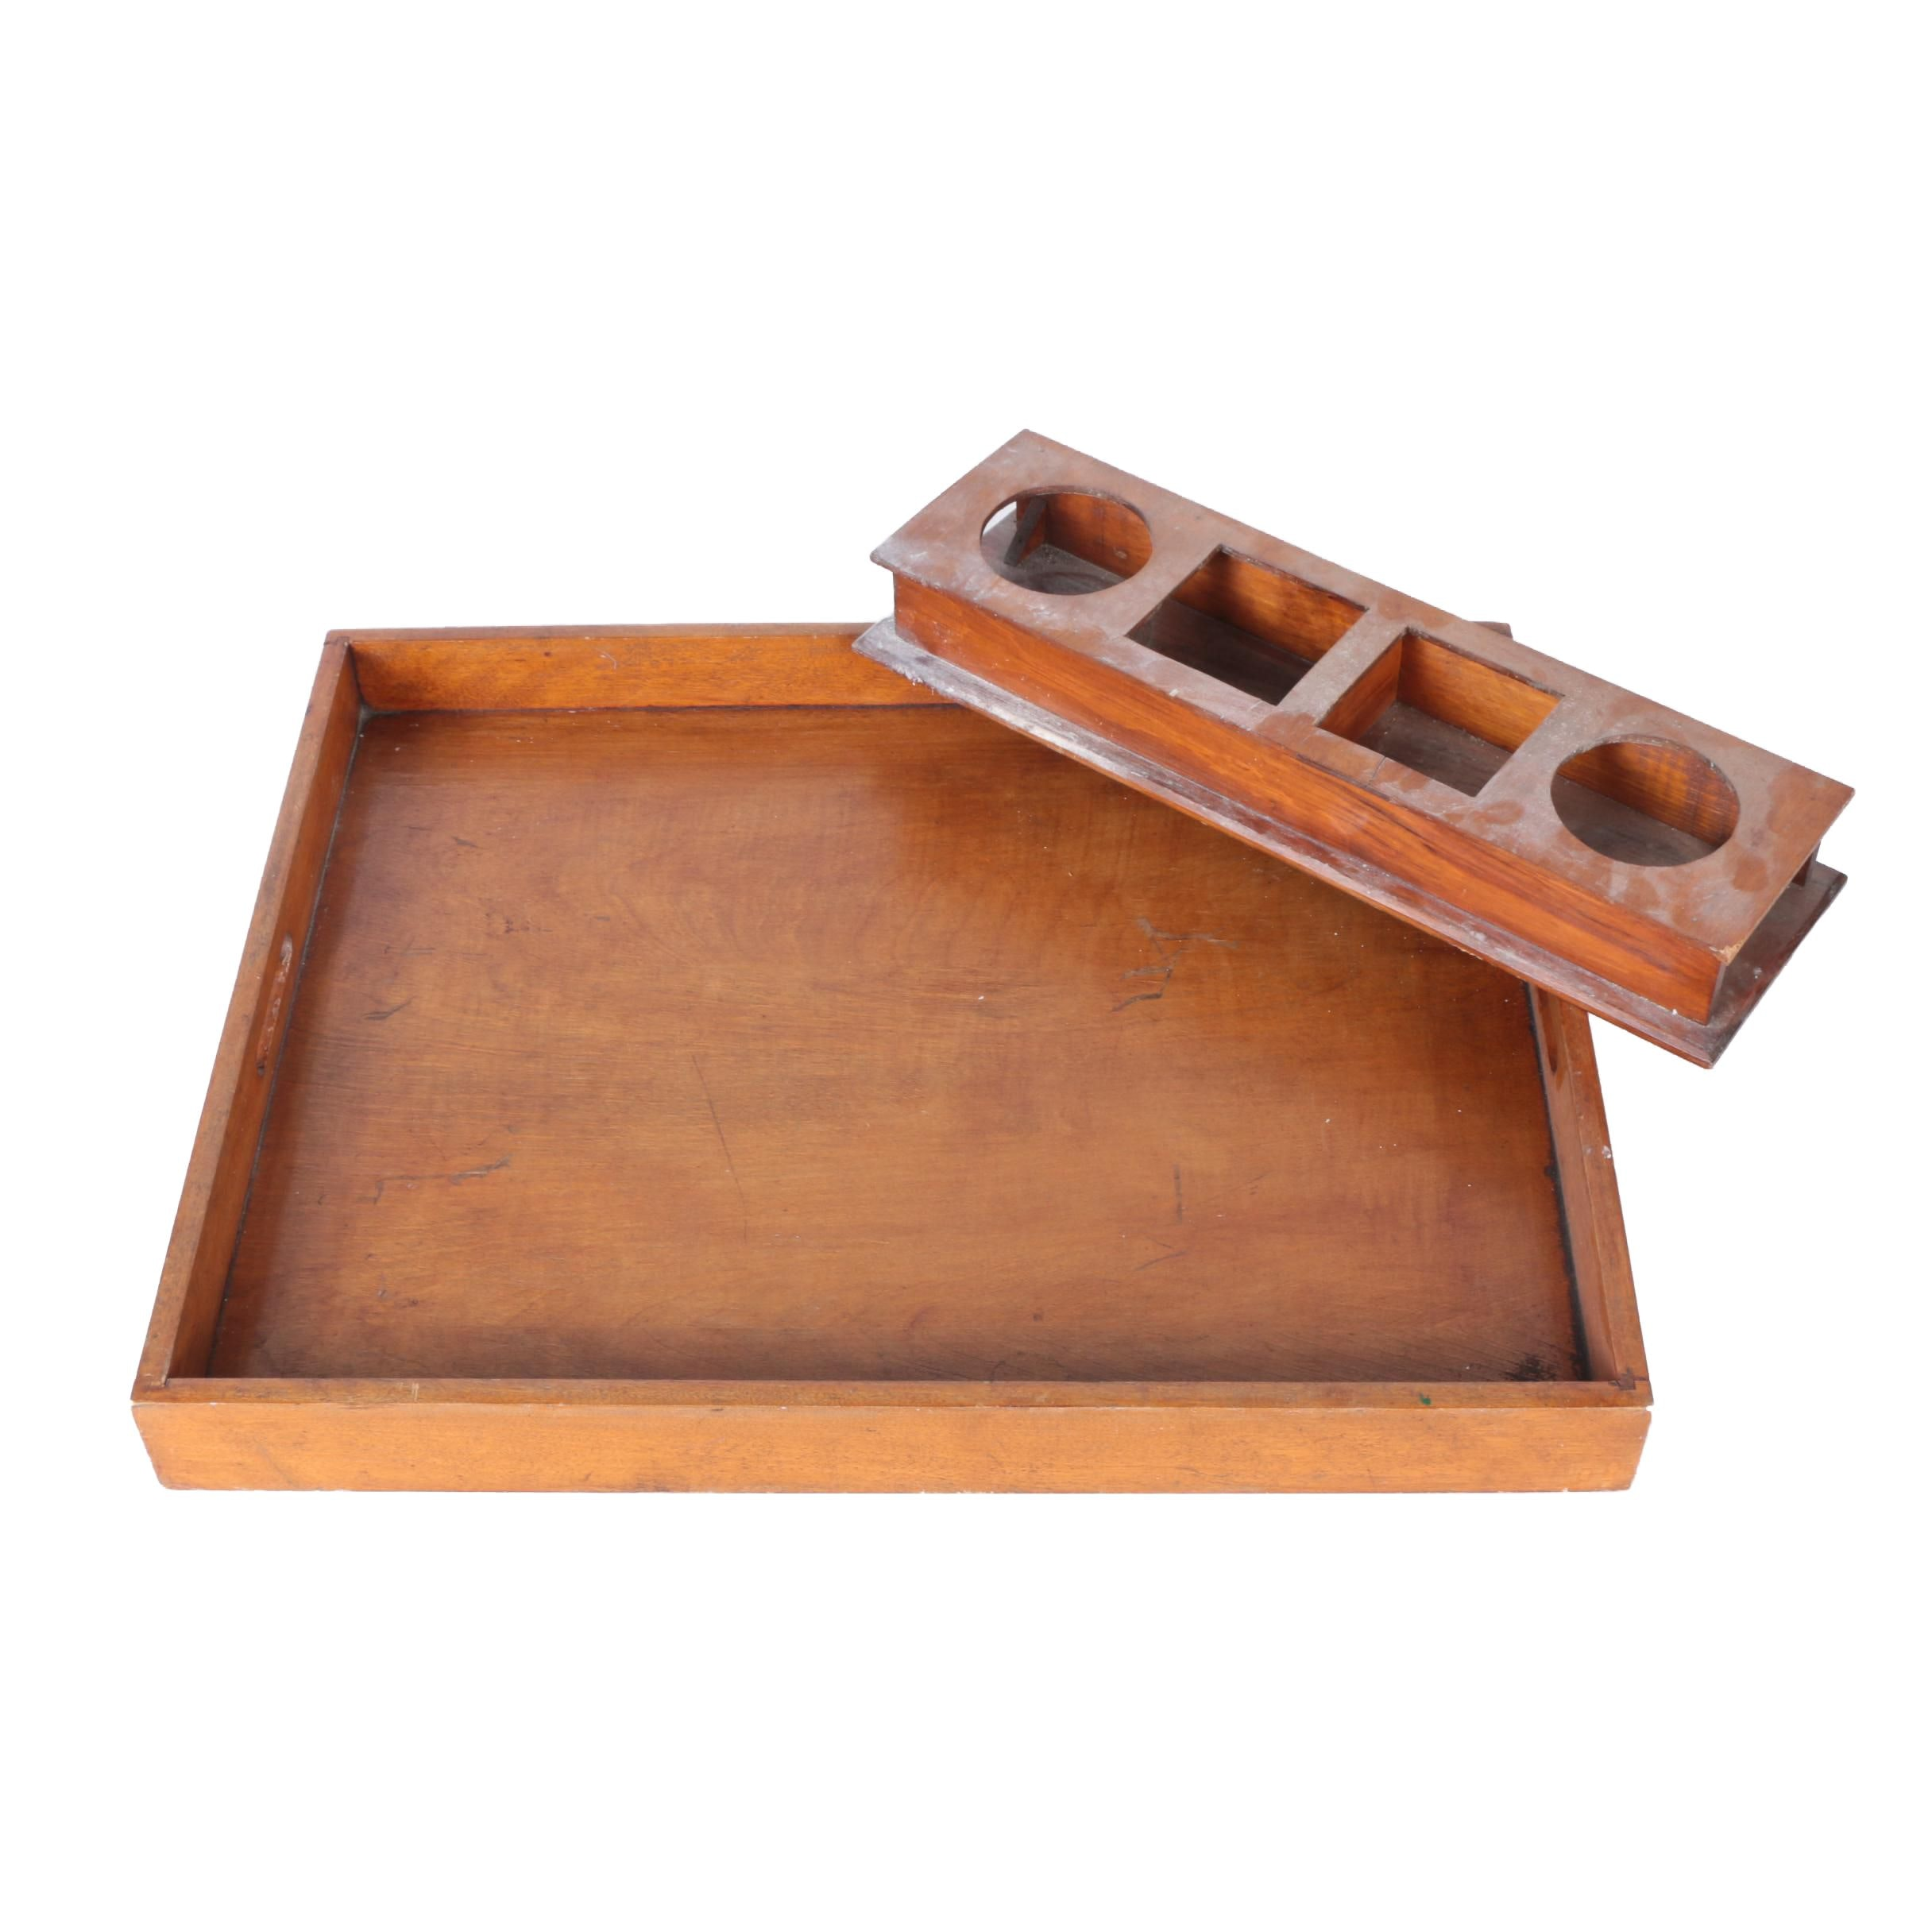 Wooden Gallery Tray and Caddy